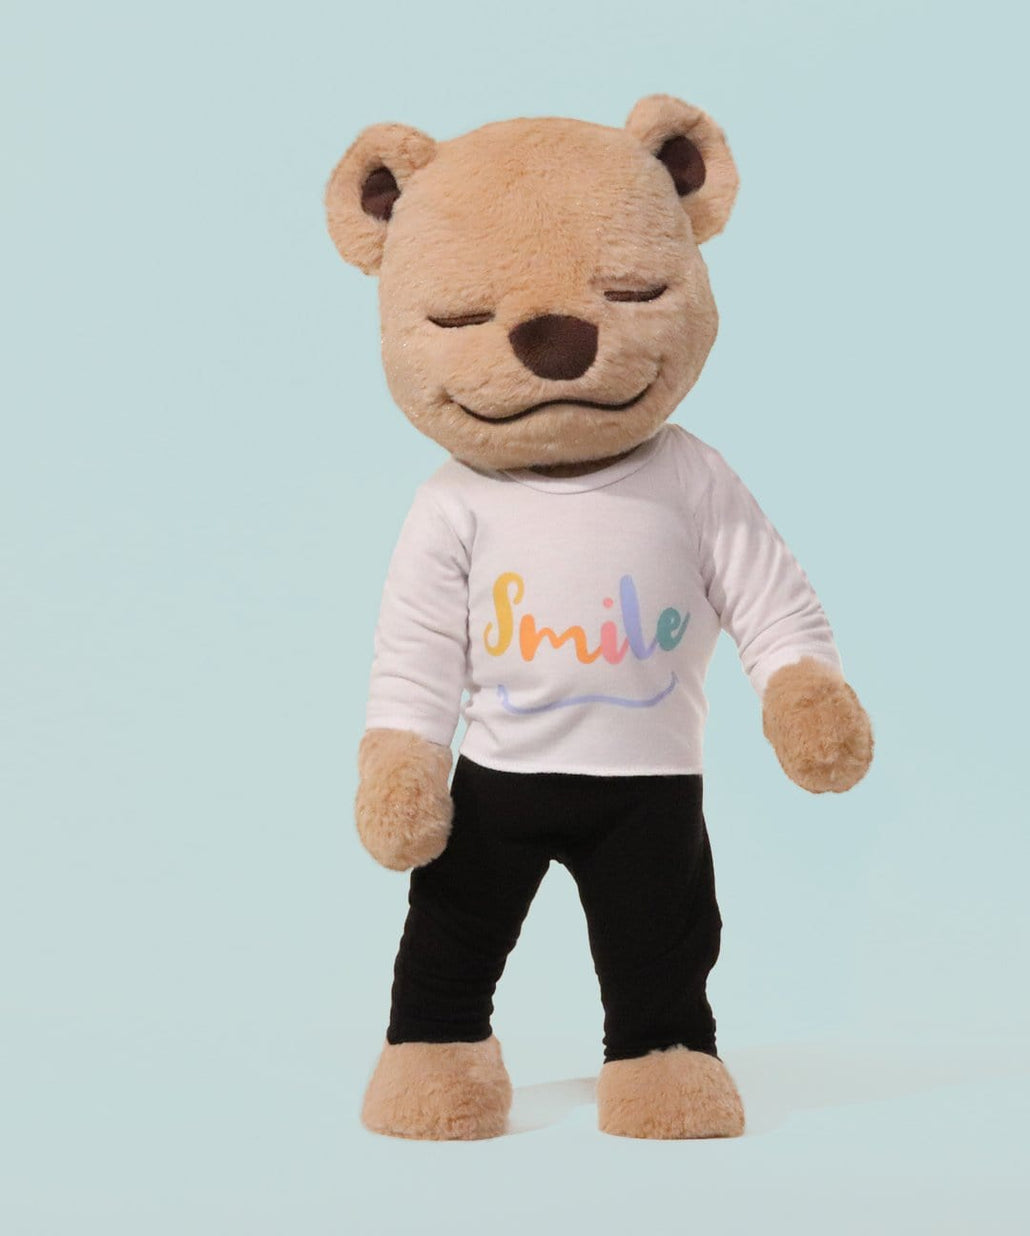 Smile Shirt - Yoga T-Shirt for Meddy Teddy